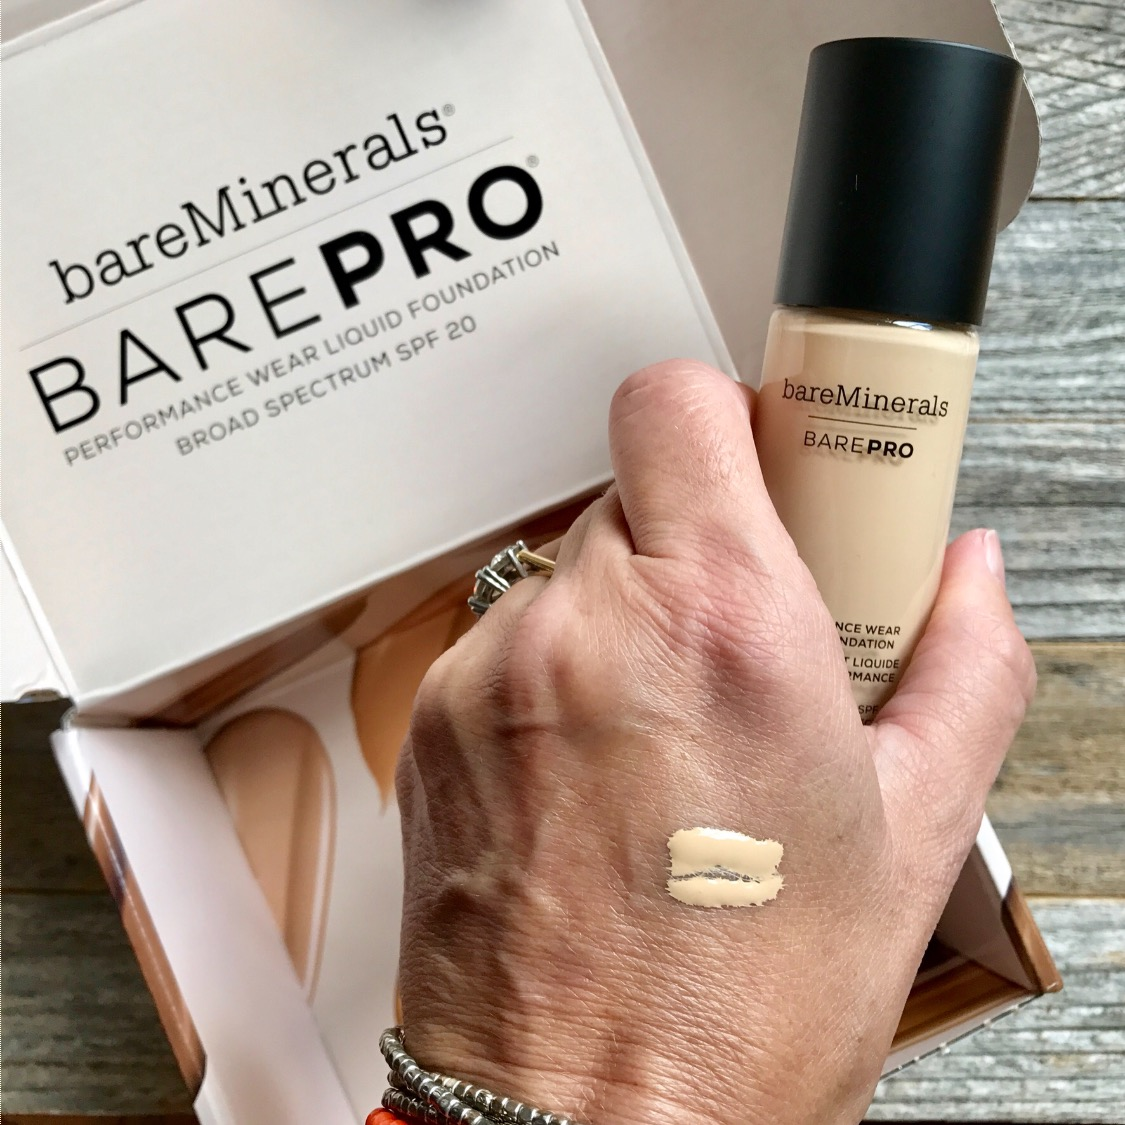 #bareminerals #barepro #review #foundation